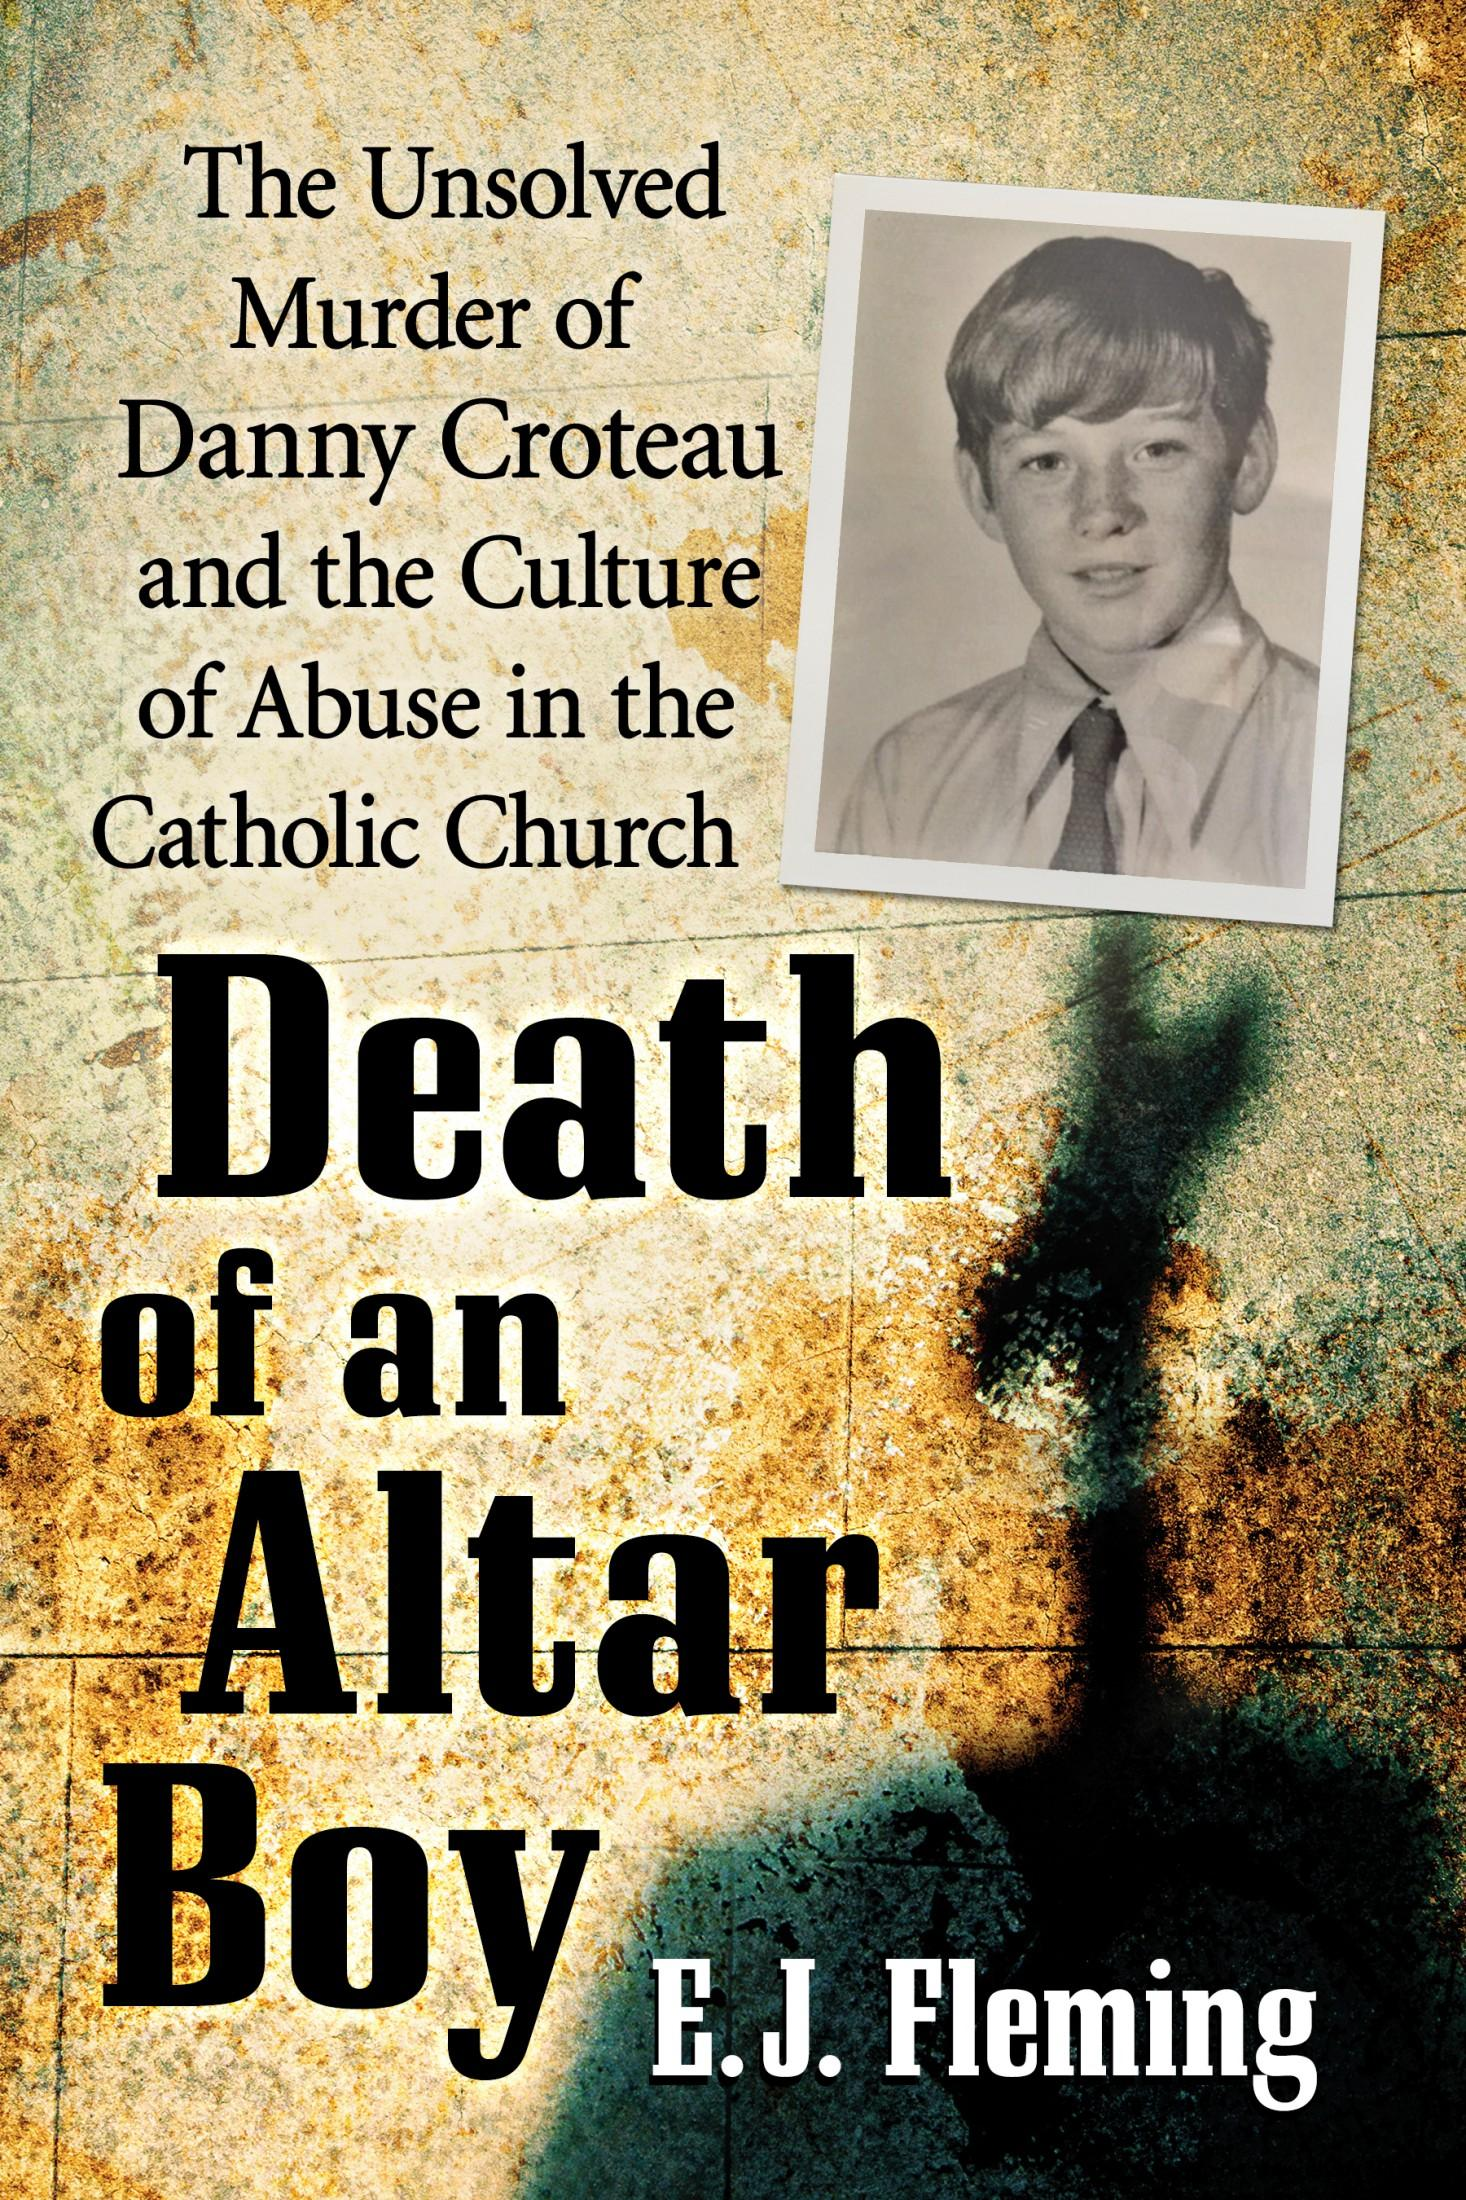 Death of an Altar Boy: The Unsolved Murder of Danny Croteau and the Culture of Abuse in the Catholic Church